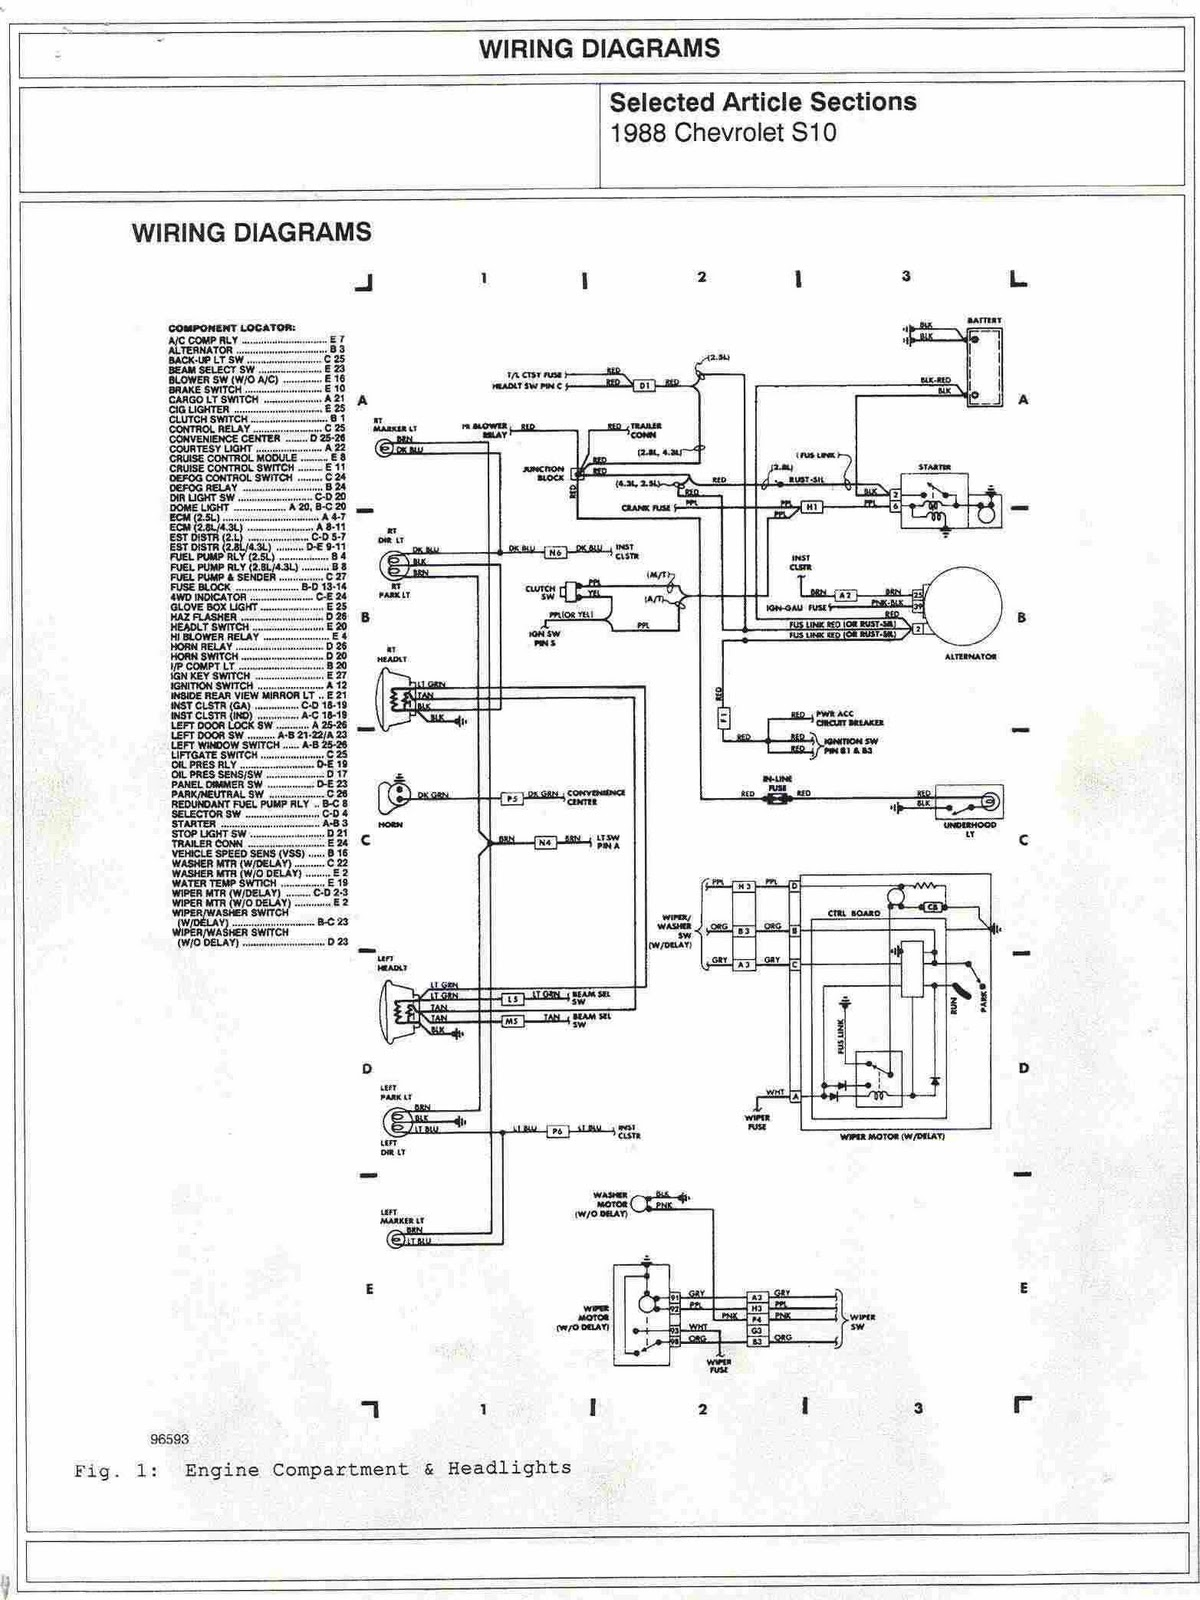 hight resolution of 95 el dorado wiring diagram wiring librarydiagram simonand 1988 chevrolet s10 engine compartment and 1987 cadillac